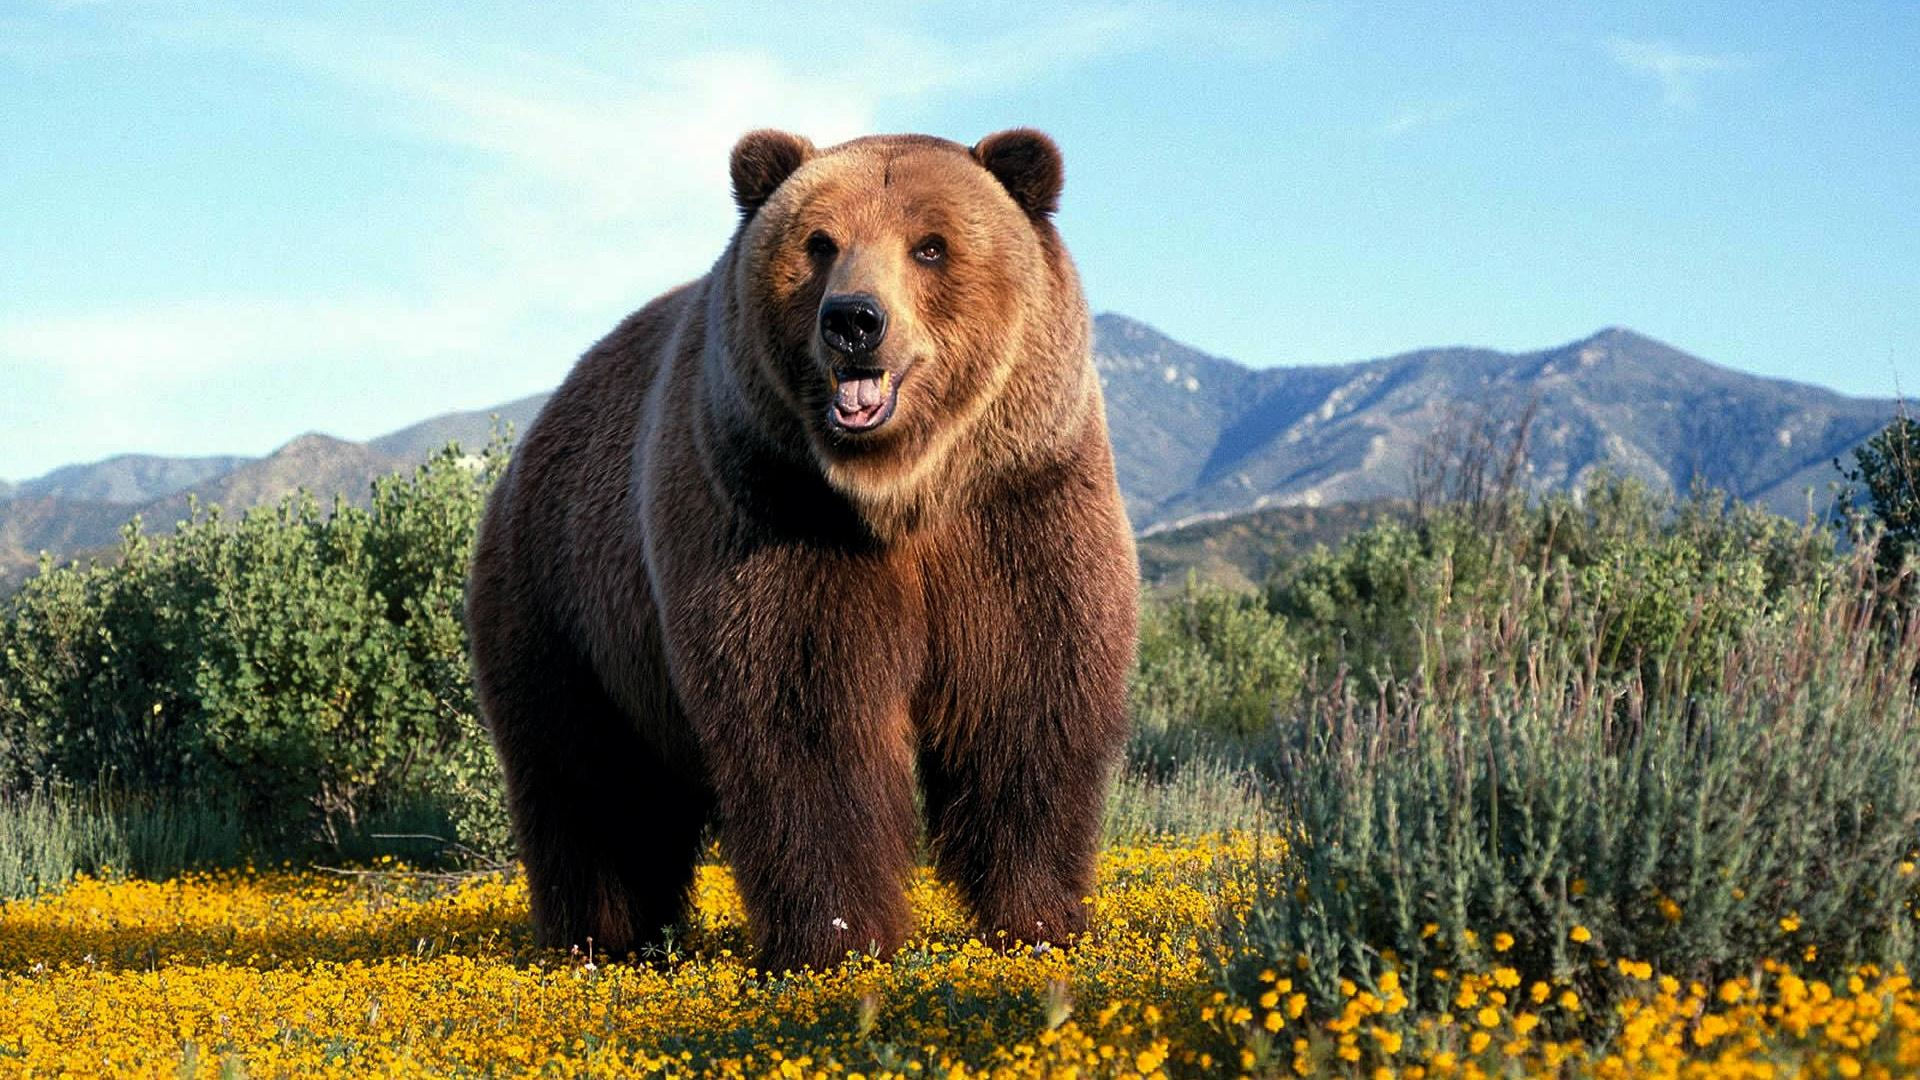 desktop-grizzly-bear-animal-pictures-dowload